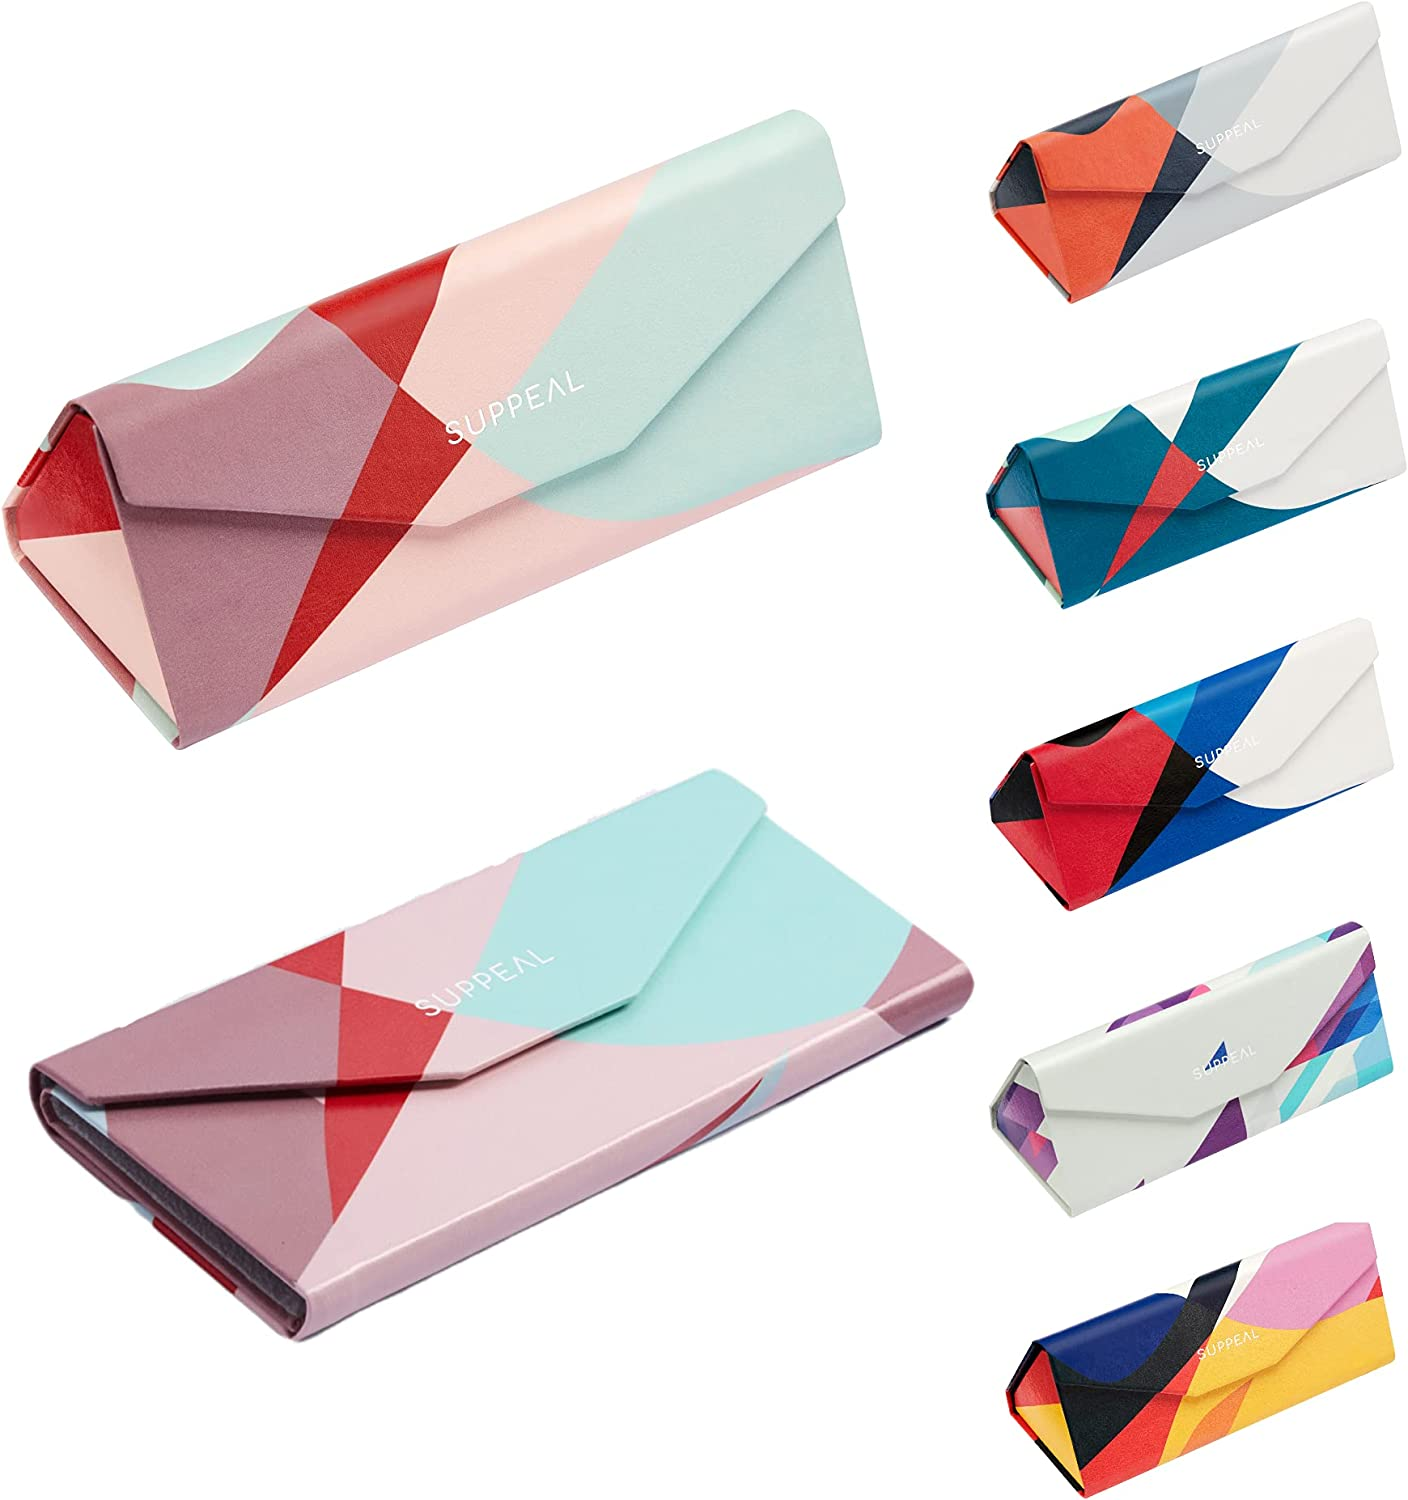 Suppeal Inexpensive Glasses Case Sunglasses Surprise price with Fashionable Women for